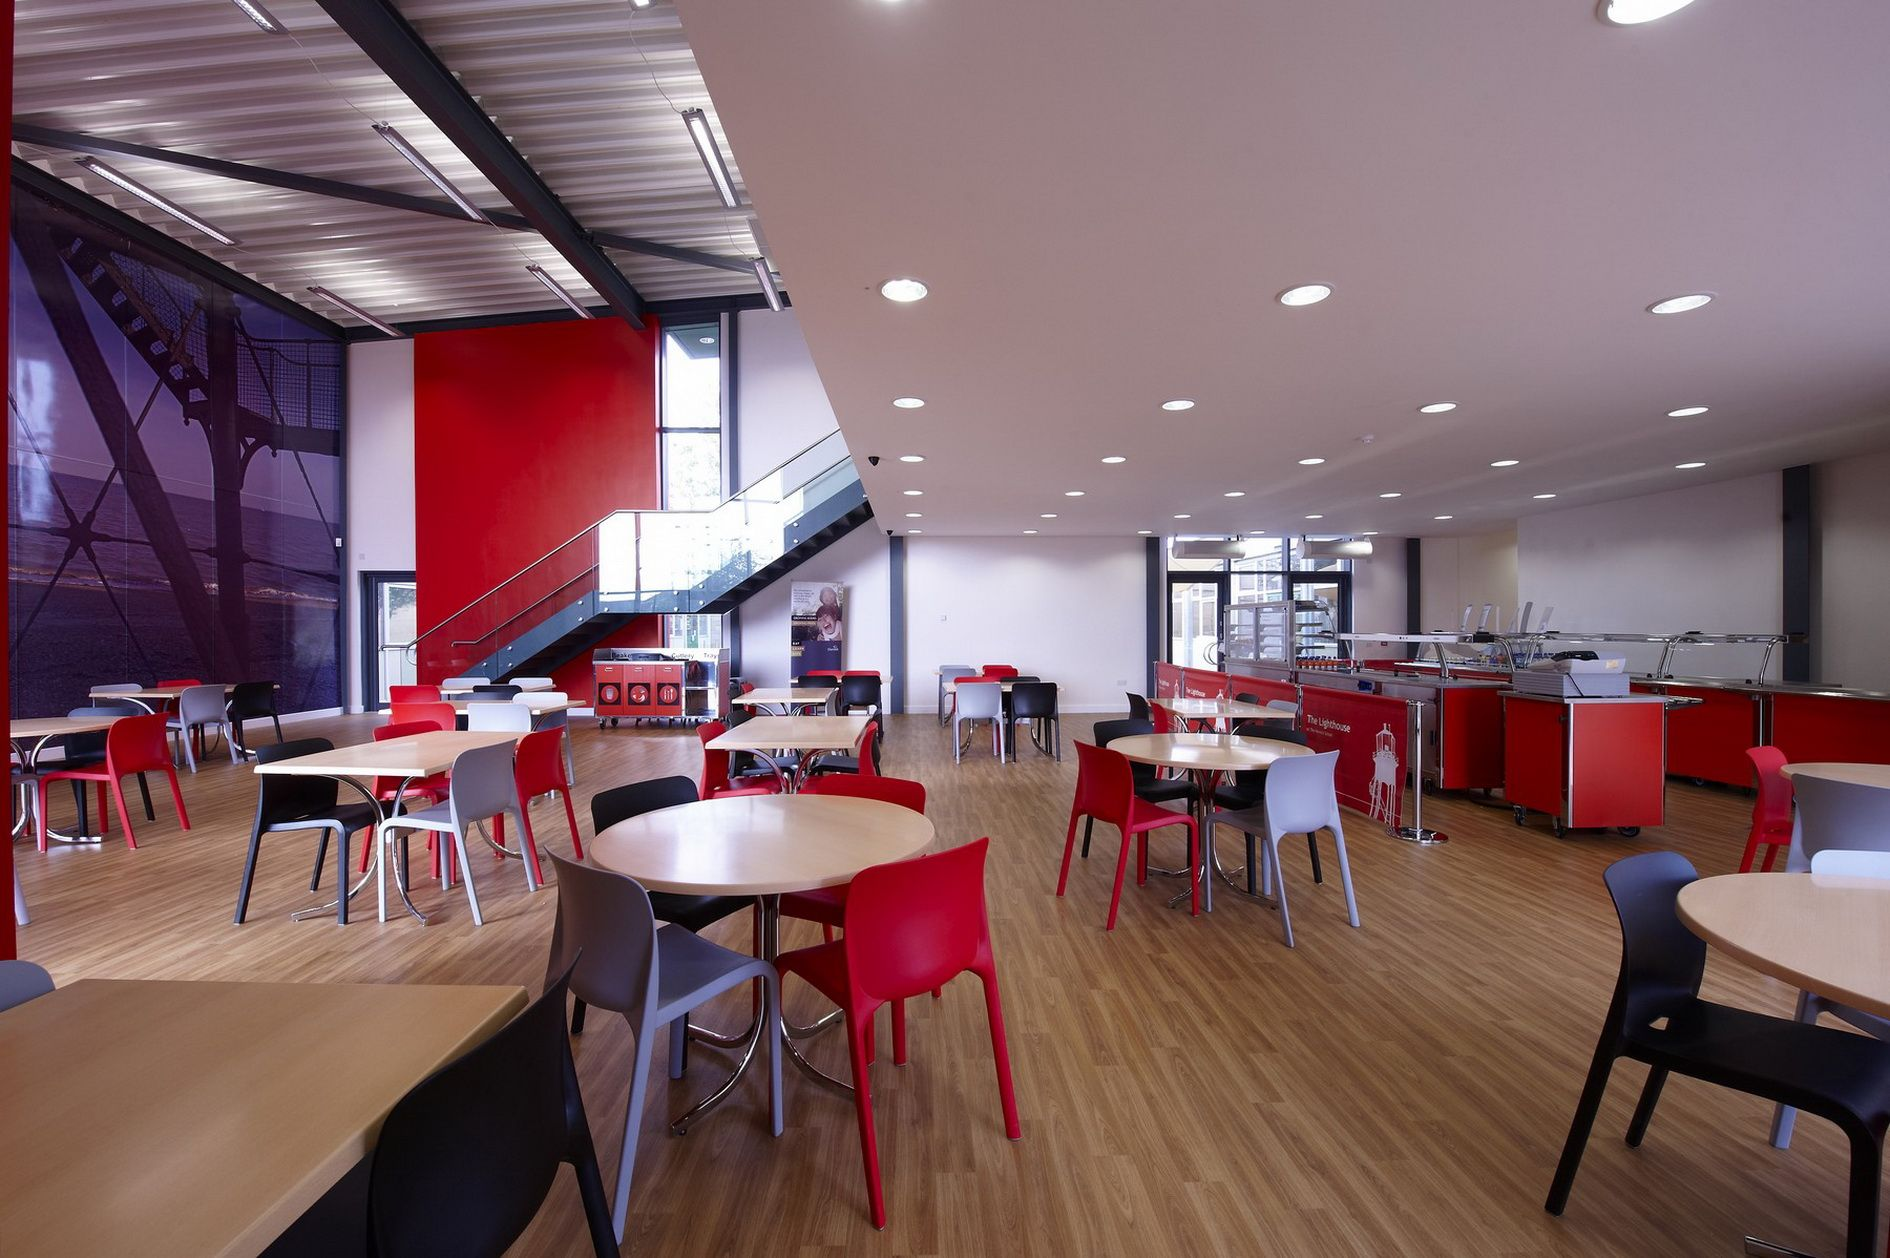 Modern school canteen interior design desain interior for The interior design institute